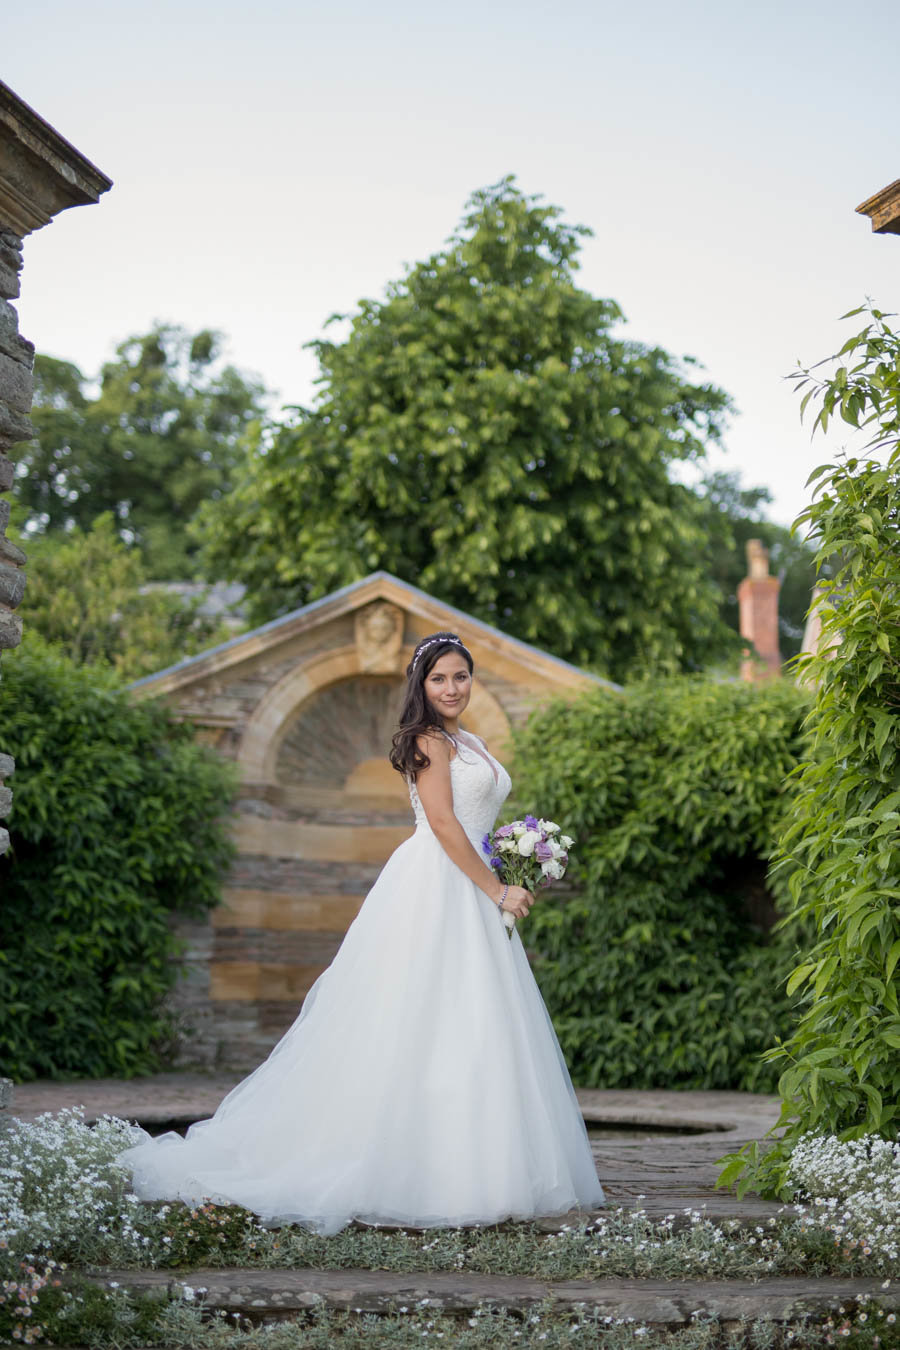 Bridal photo on steps at Hestercombe Gardens